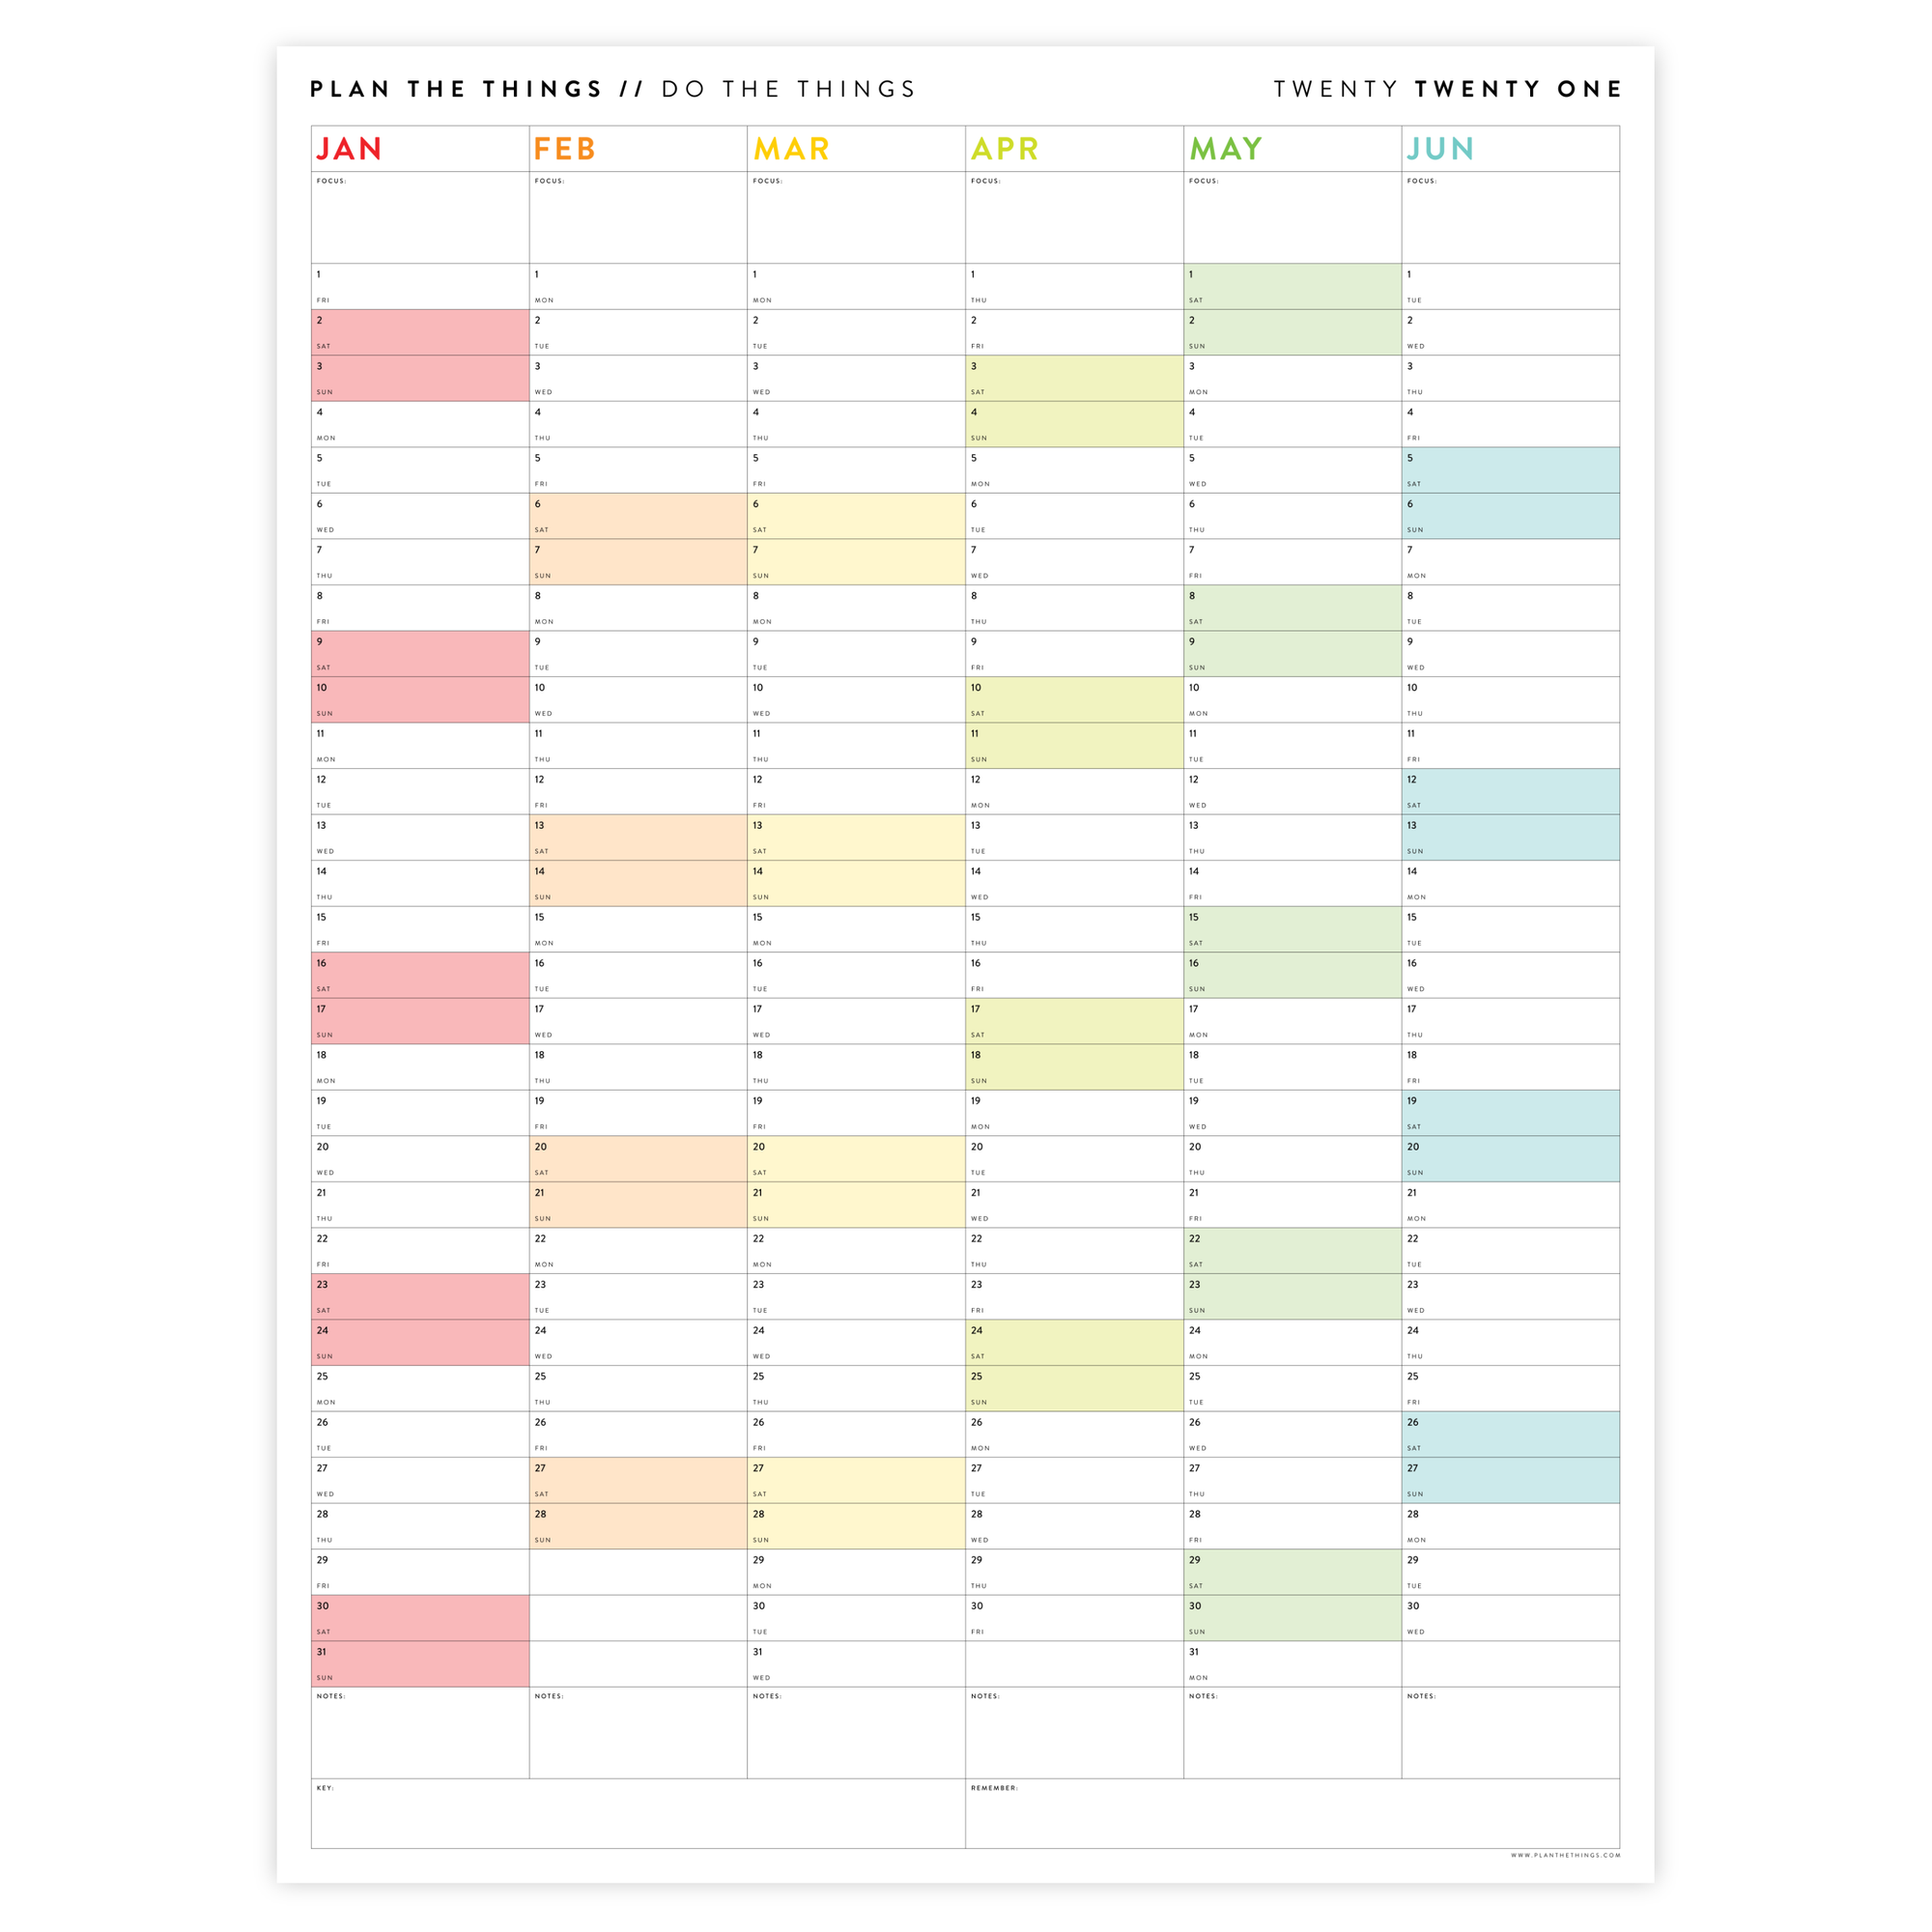 SIX MONTH 2021 WALL CALENDAR (JANUARY TO JUNE) WITH RAINBOW WEEKENDS